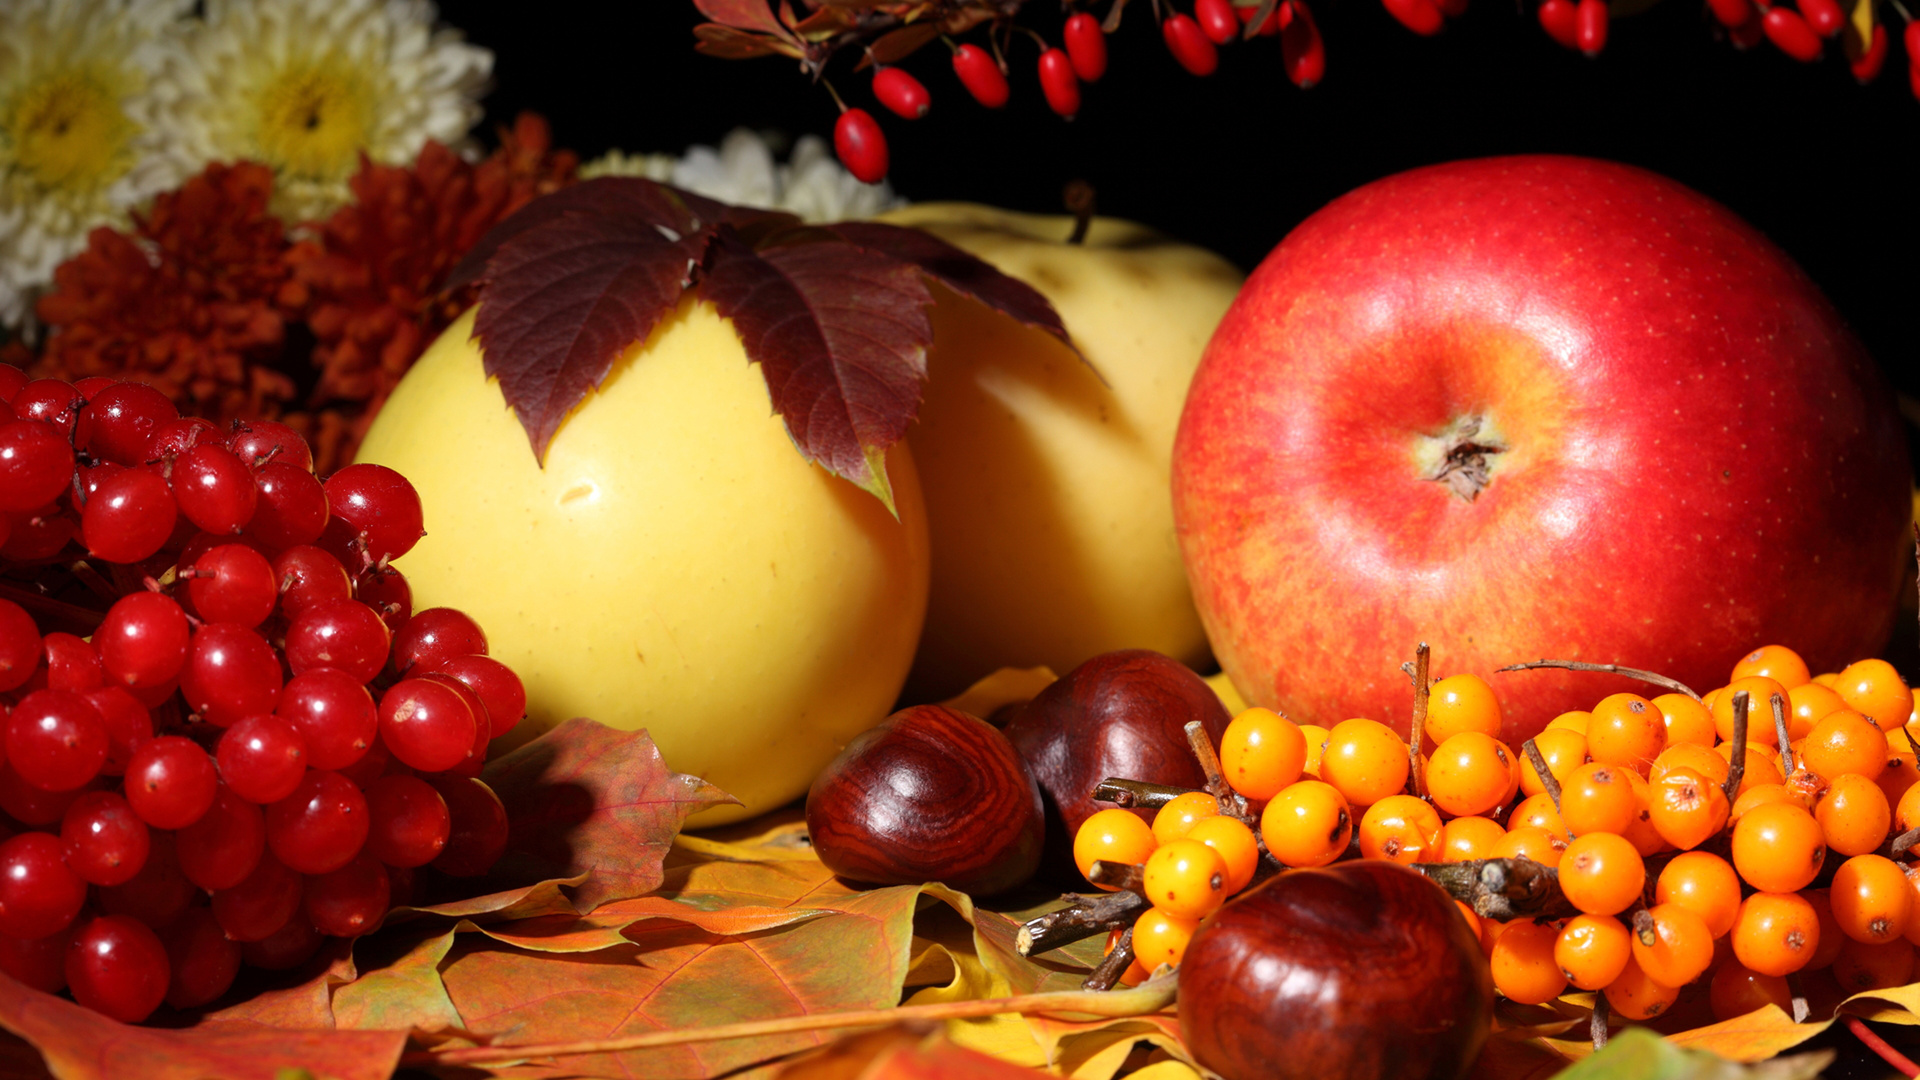 Fall Nature Wallpaper Fruit Still Life Apples Berries Berry Nuts Food Leaves